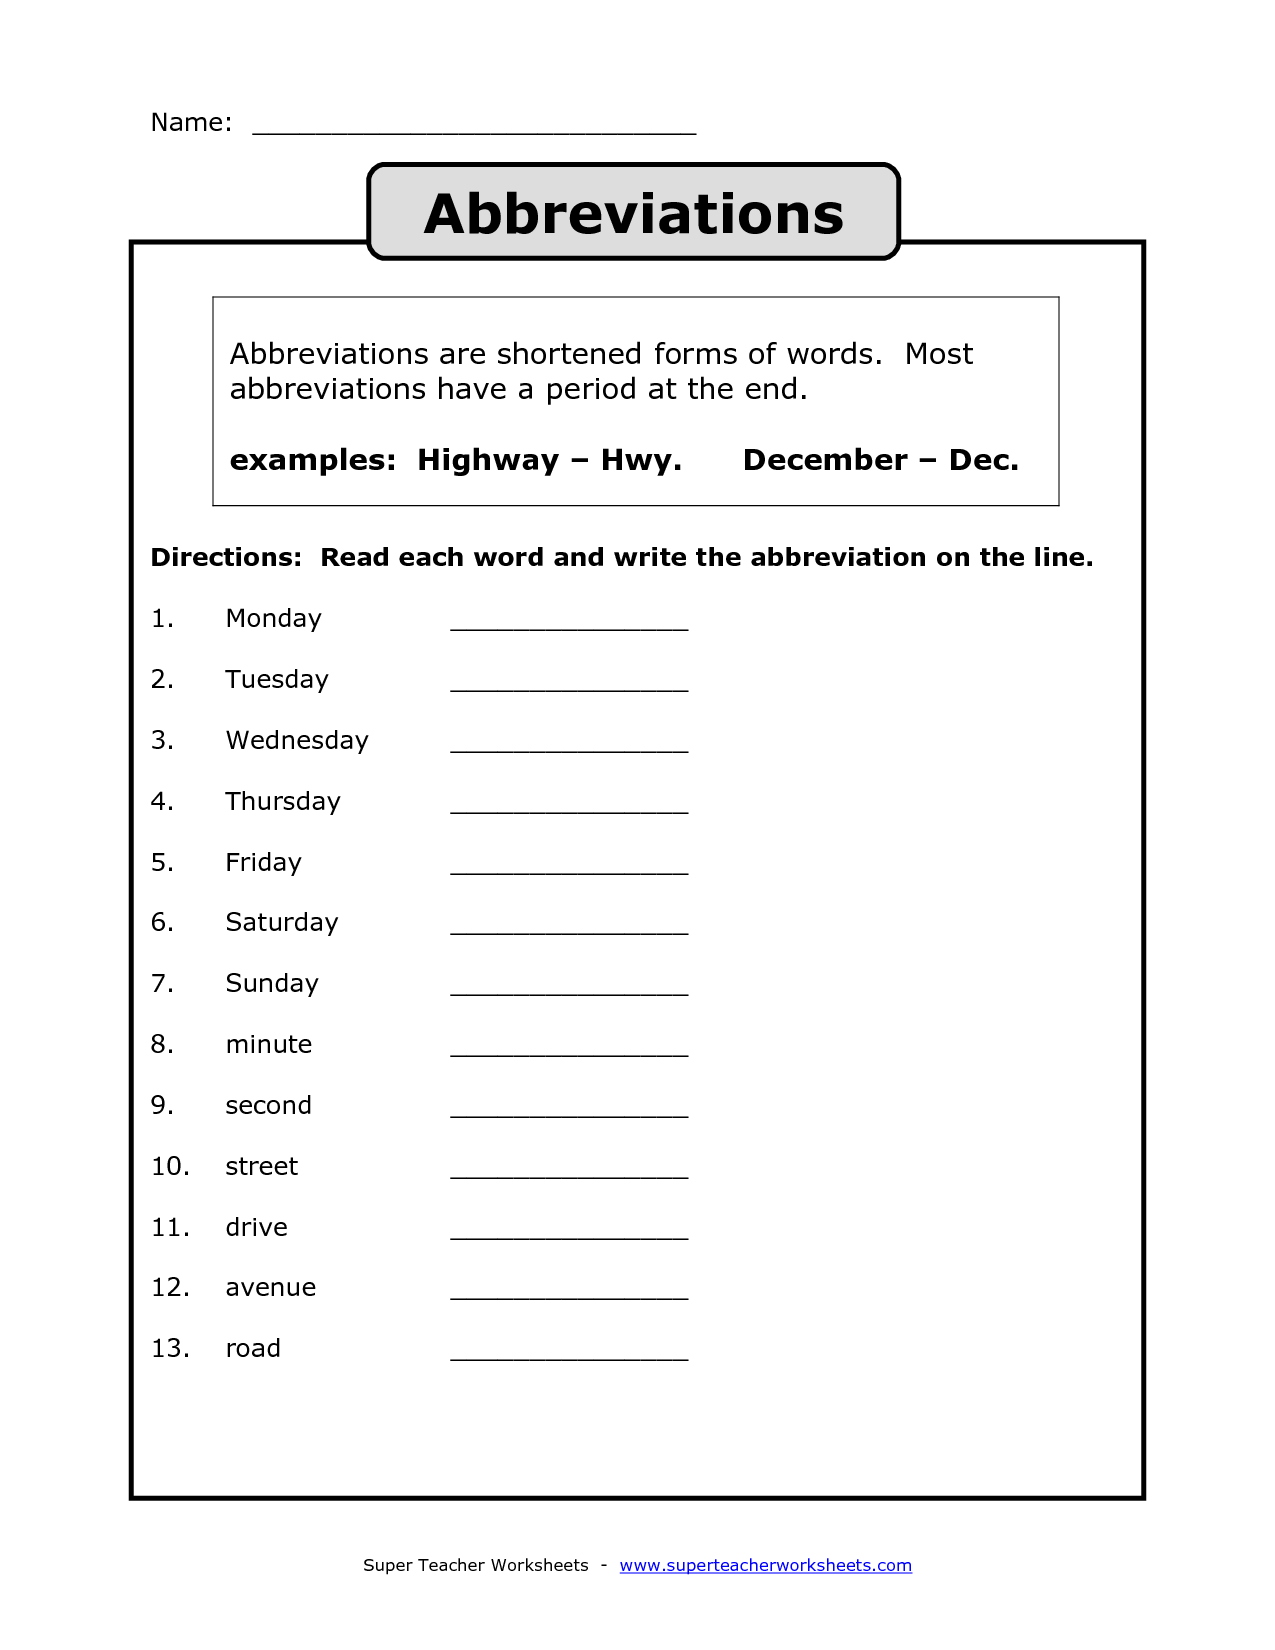 Printables Abbreviation Worksheets state abbreviation worksheet bloggakuten 4 best images of abbreviations printable state